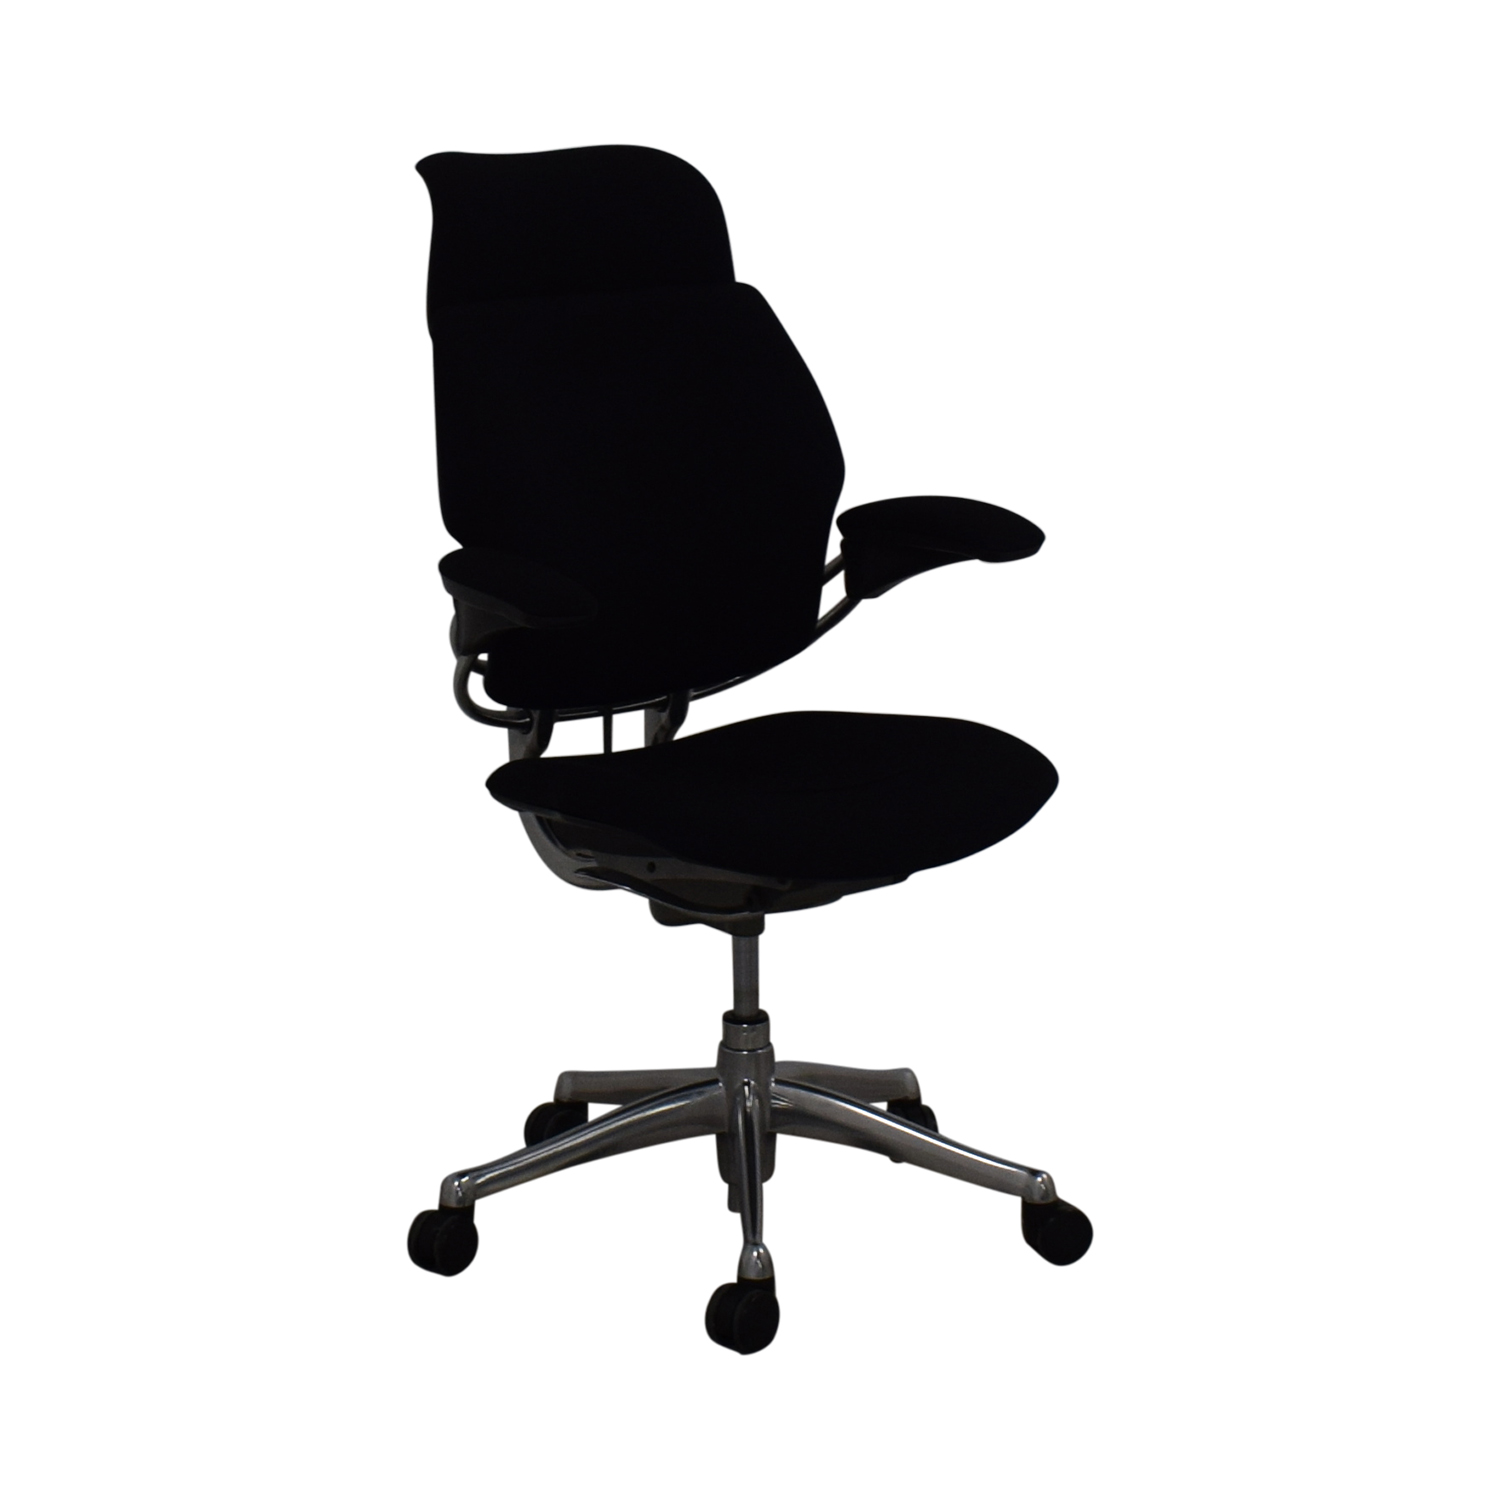 Humanscale Humanscale Desk Chair for sale